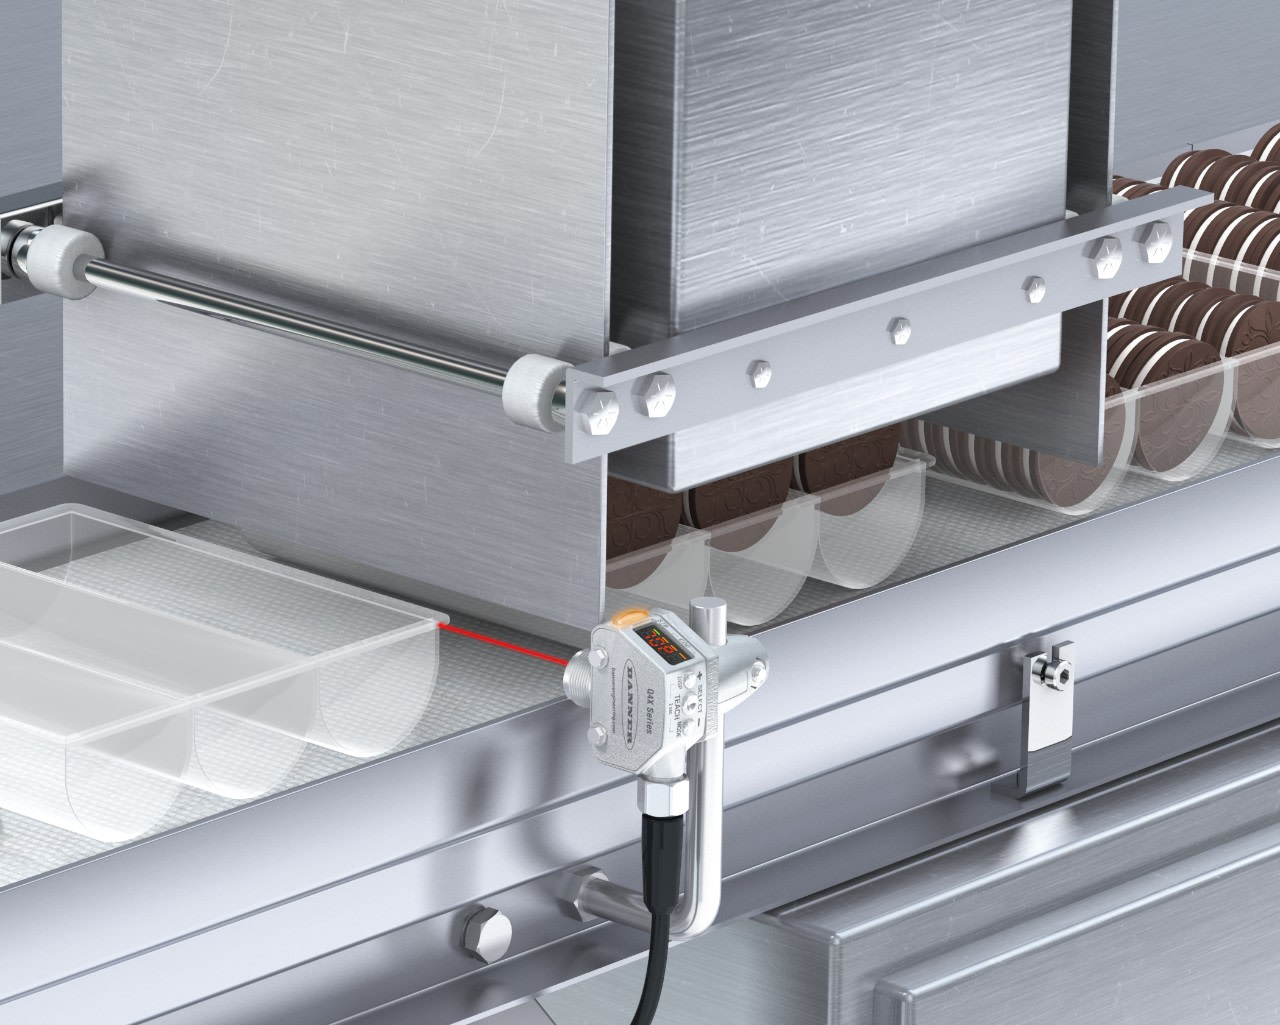 Clear Plastic Food Container Detection in a Sanitary Environment